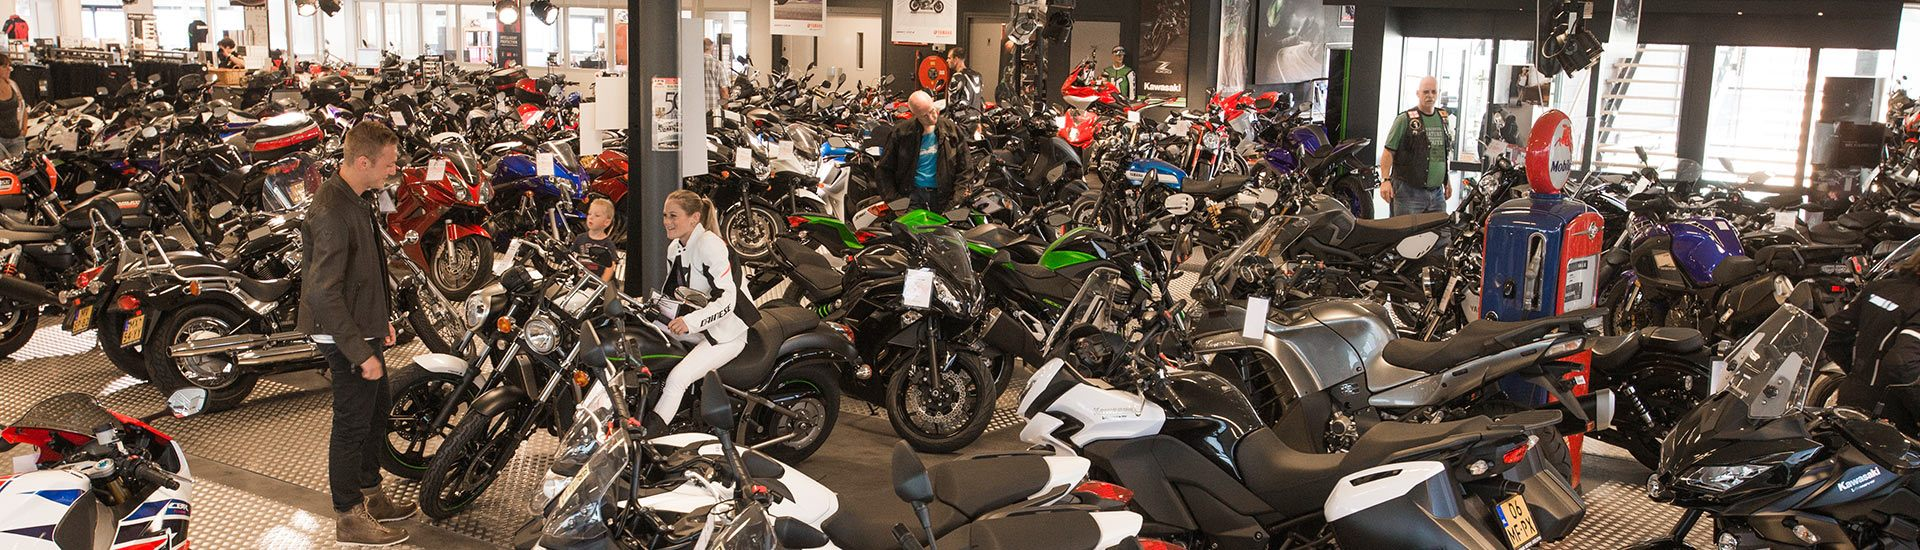 Showroom Arie Molenaar Motors